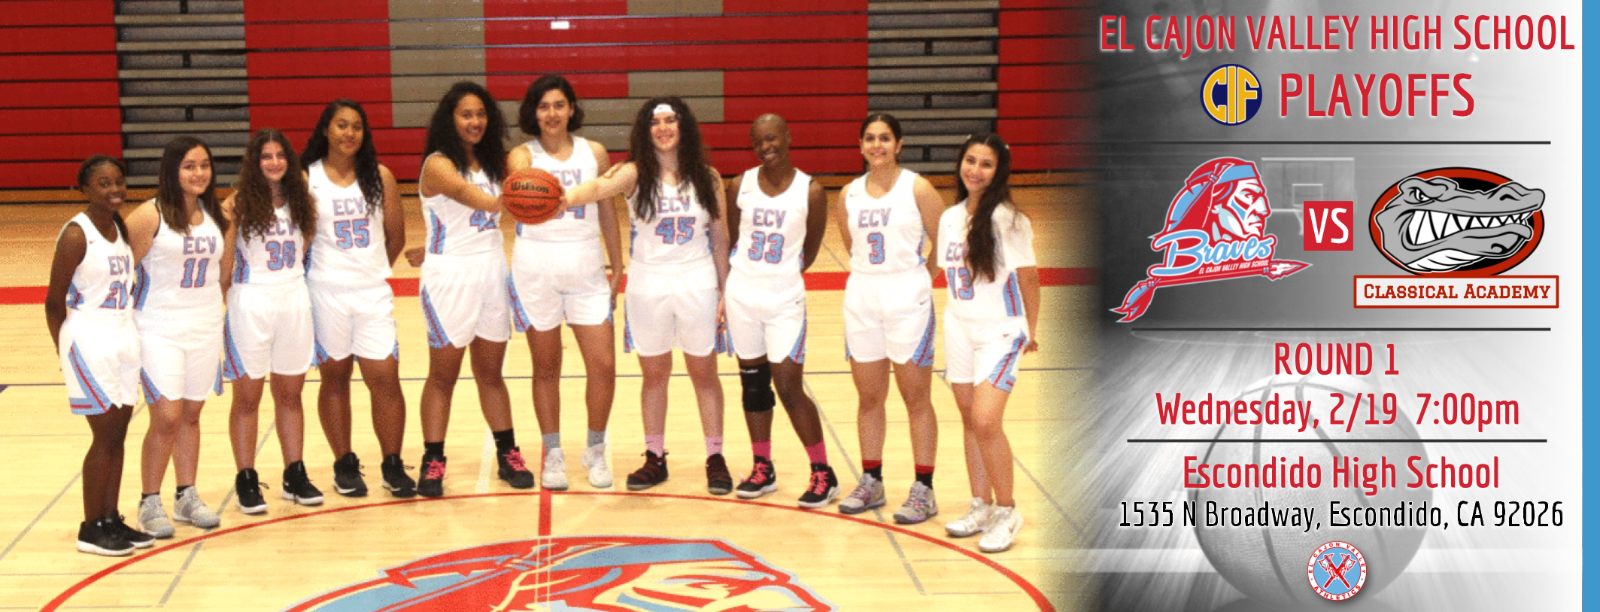 CIF Division IV Girls Basketball Playoff (1st Round) – ECV v. Classical Academy @ Escondido High School, 7:00pm